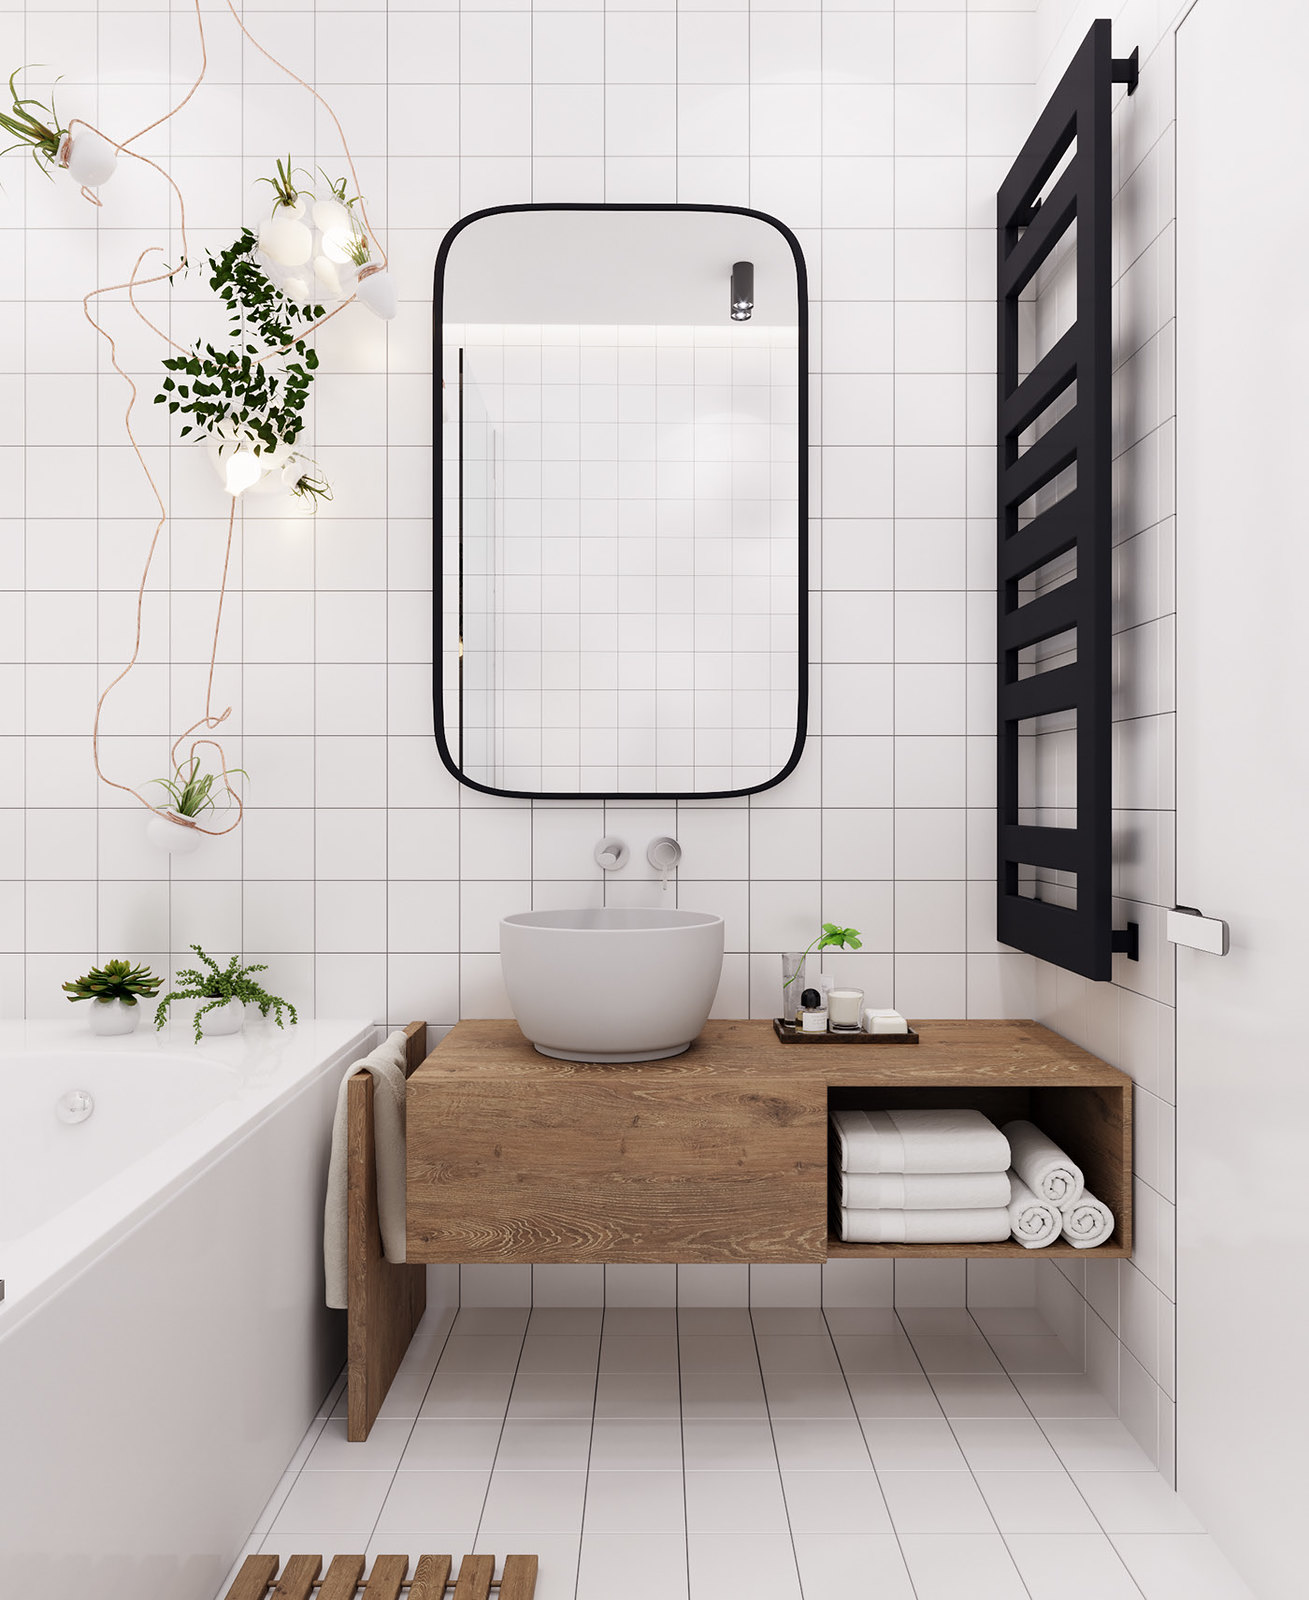 Scandinavian Style Minimalist Bathroom | Monochromatic White Simple Bathroom | Square Subway Tile | Tiny Bathroom Design | Home Inspiration